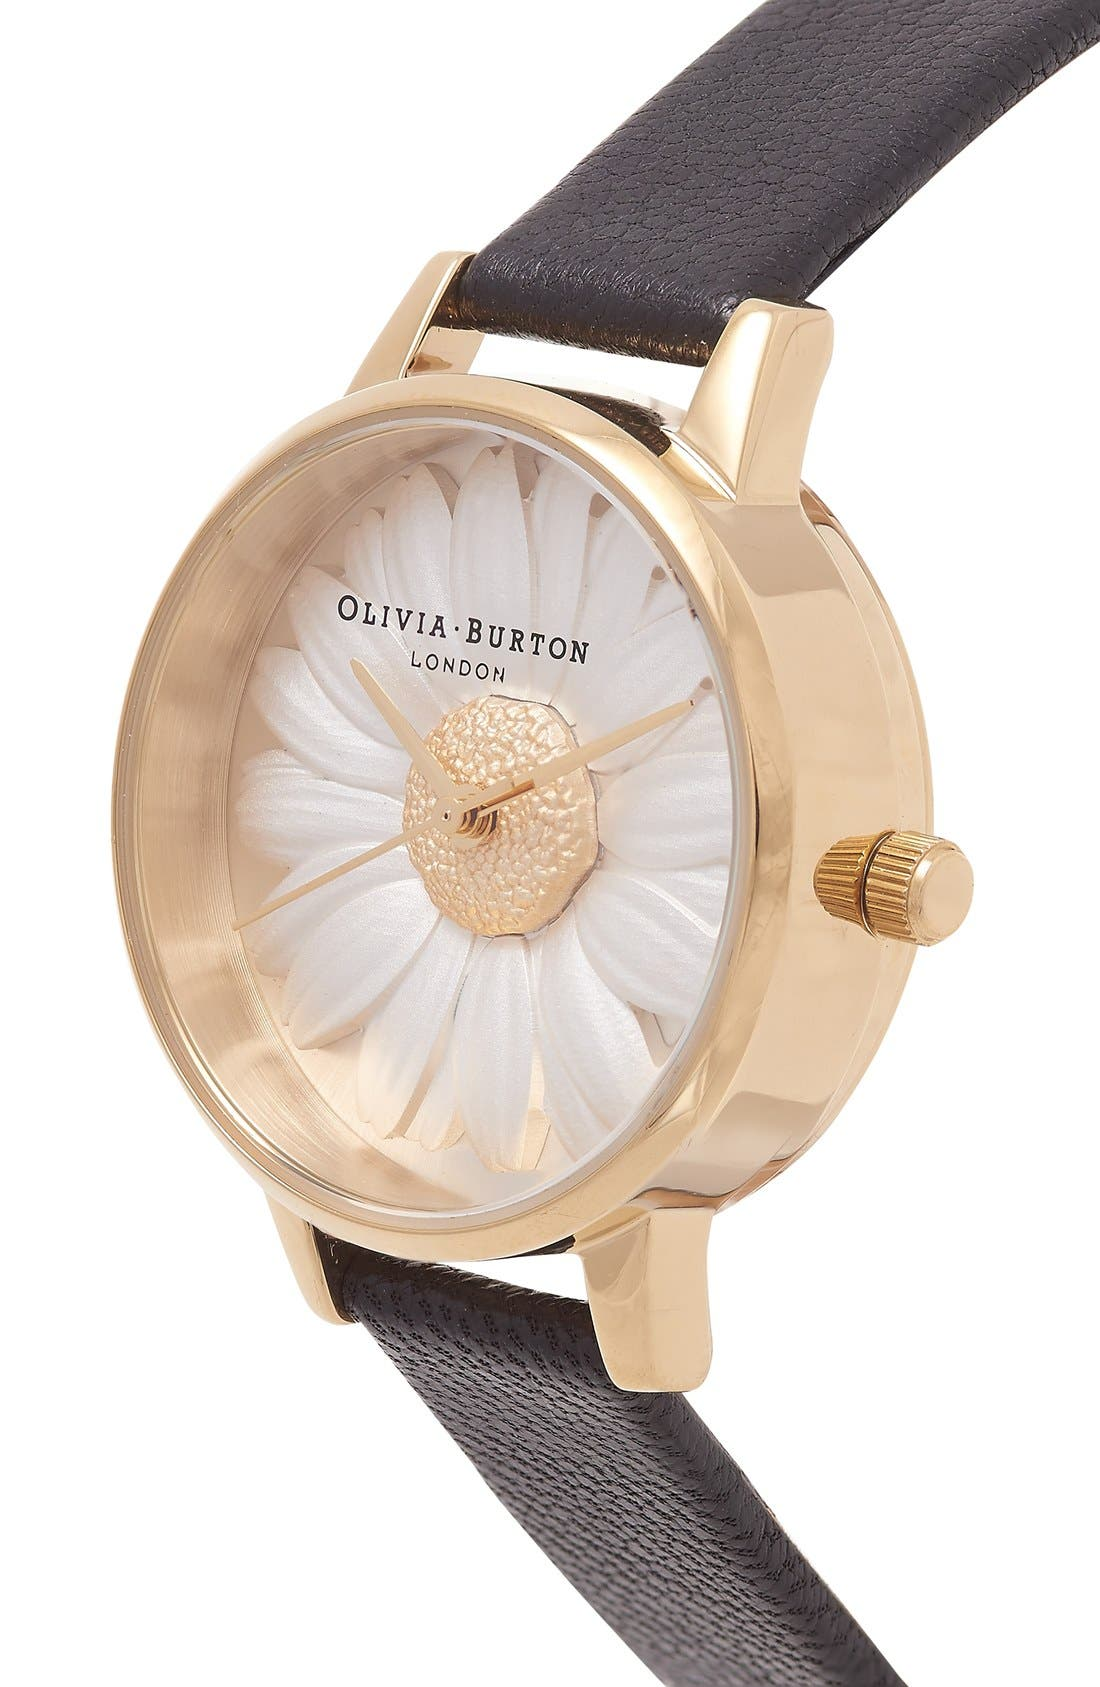 3D Daisy Leather Strap Watch, 30mm,                             Alternate thumbnail 8, color,                             001